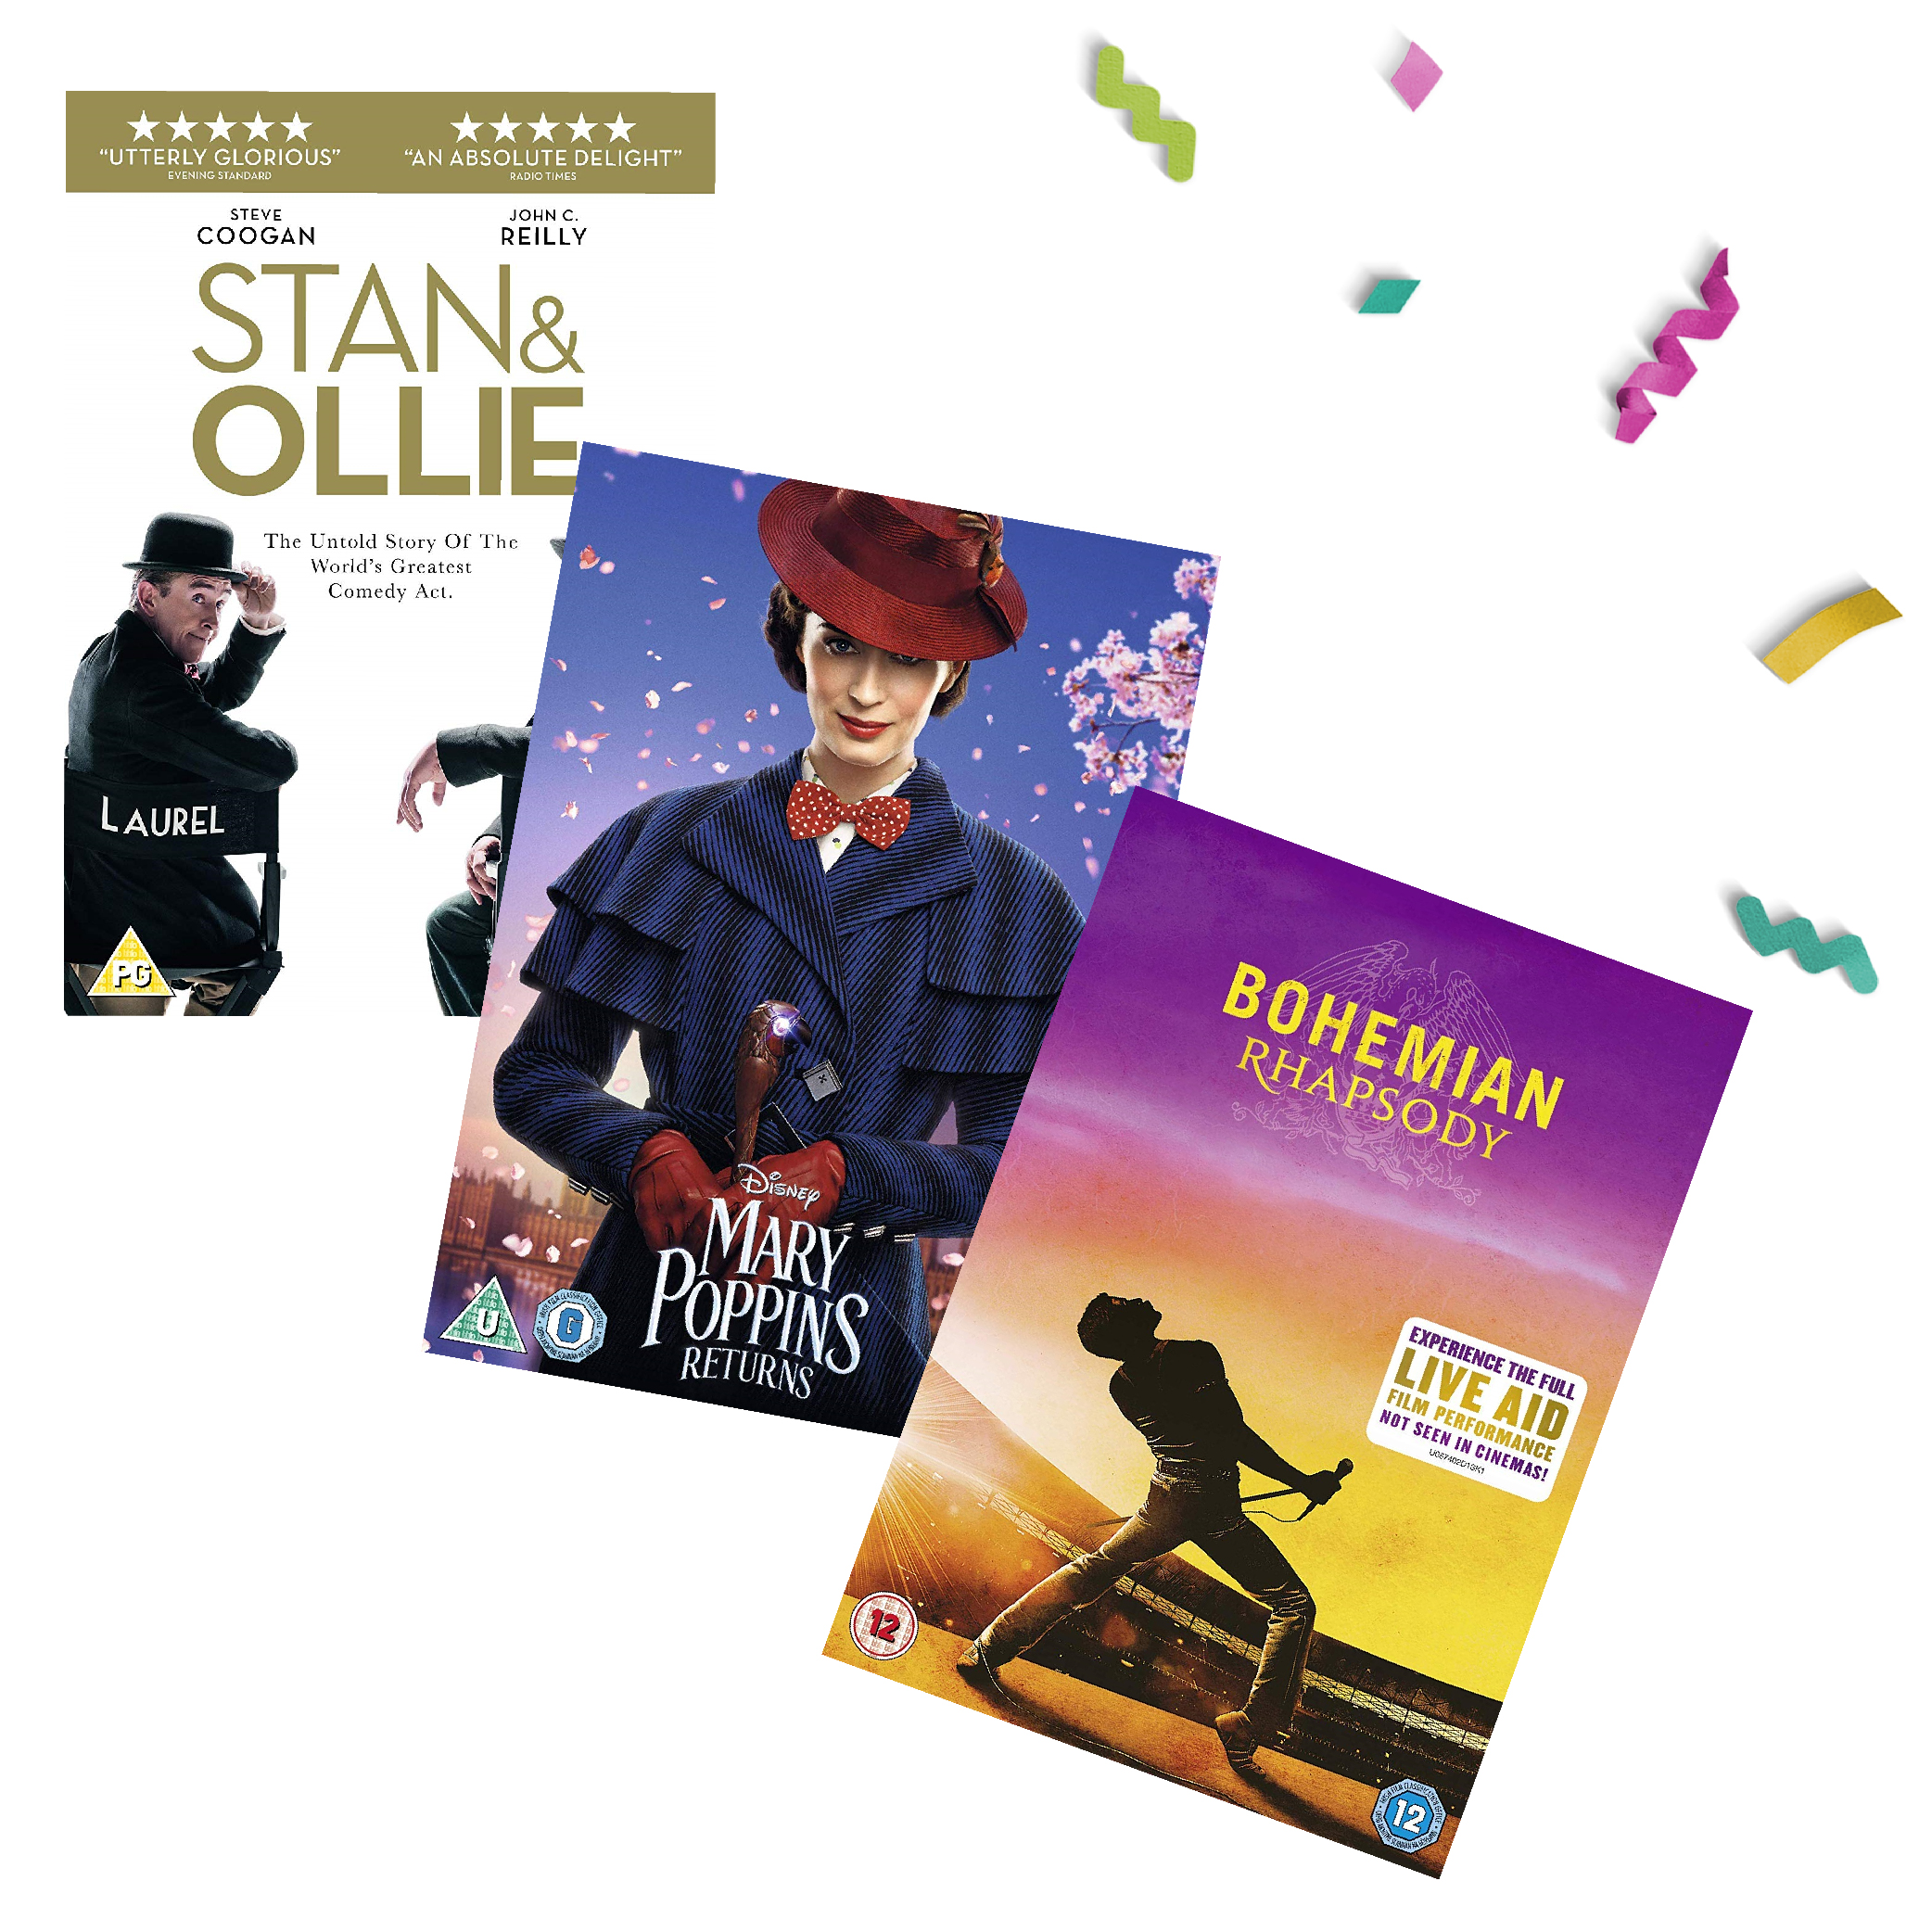 Up to 30% off new releases & more on DVD and Blu-ray